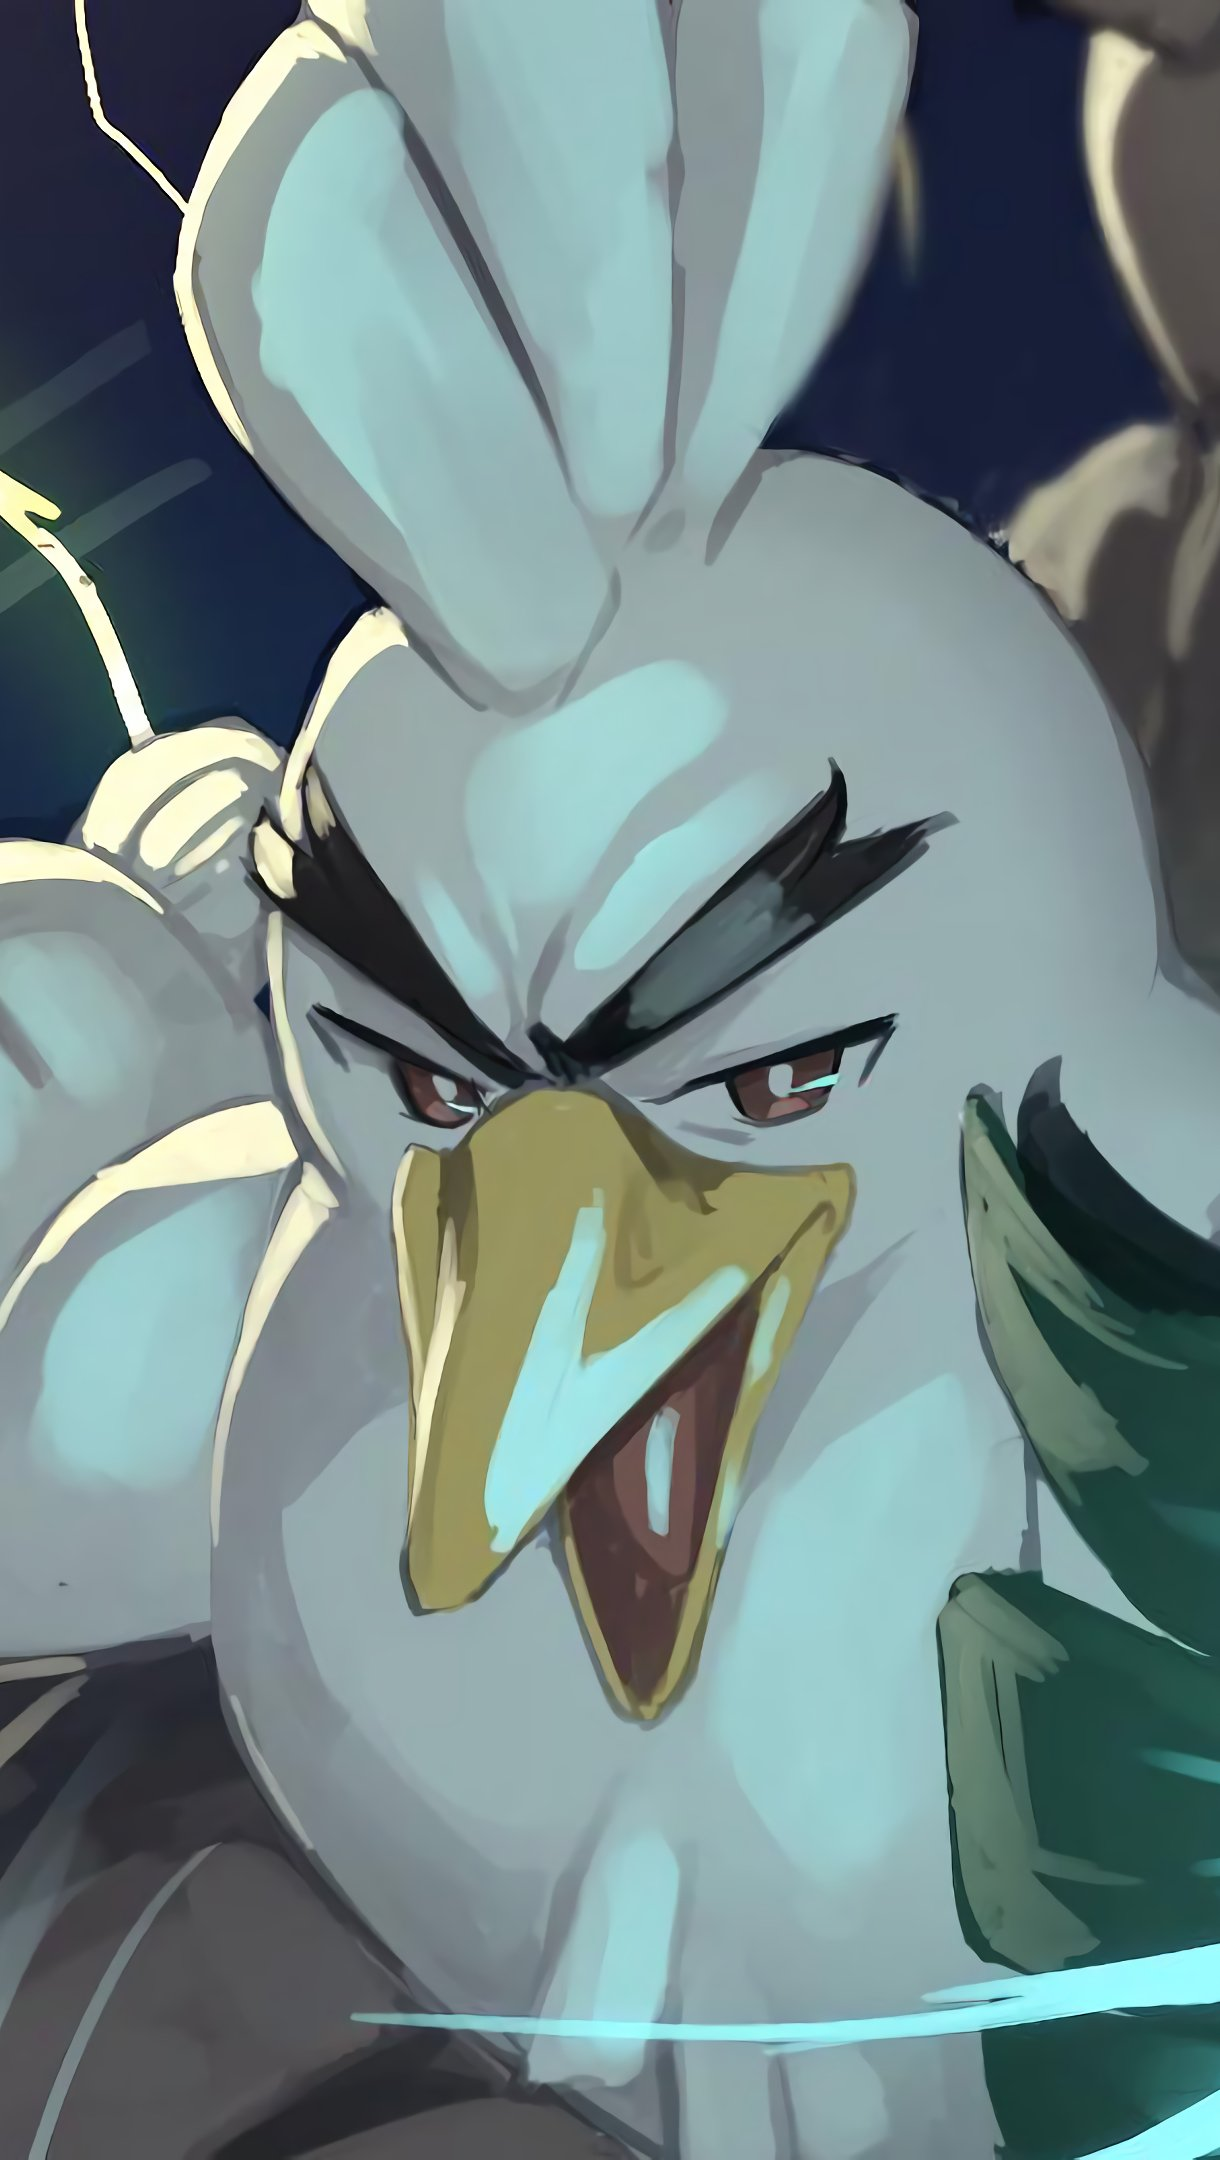 Anime Wallpaper Sirfetch'd from Pokemon Sword and Shield Vertical